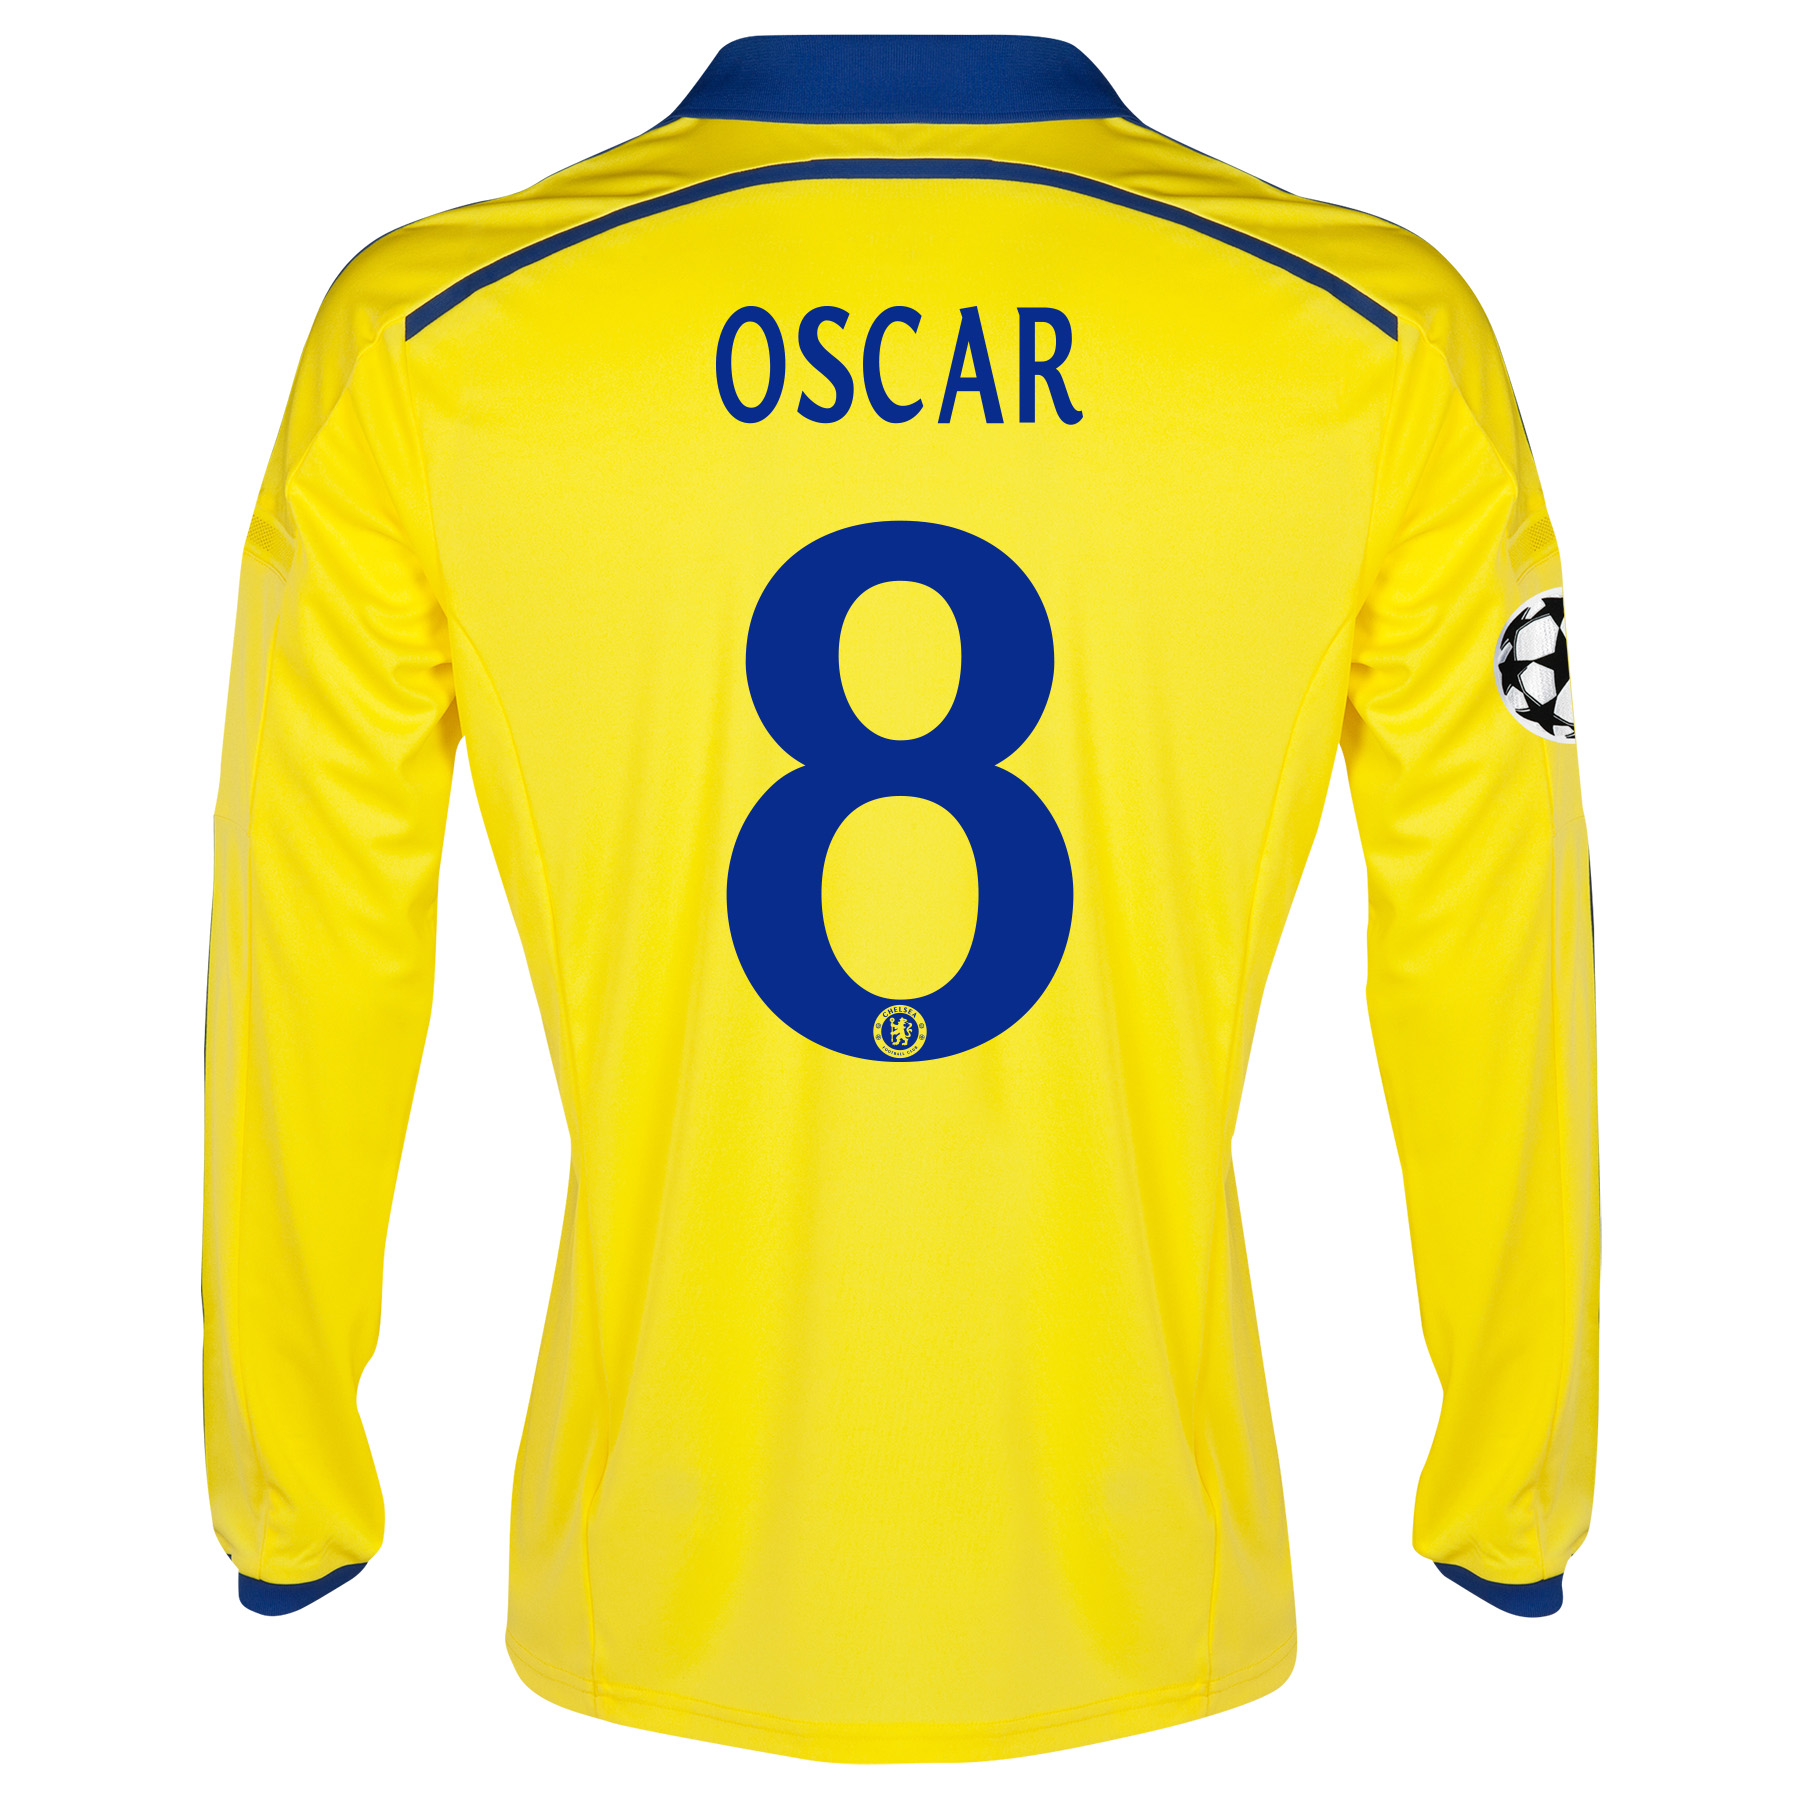 Chelsea UEFA Champions League Away Shirt 2014/15 - Long Sleeve Yellow with Oscar 11 printing